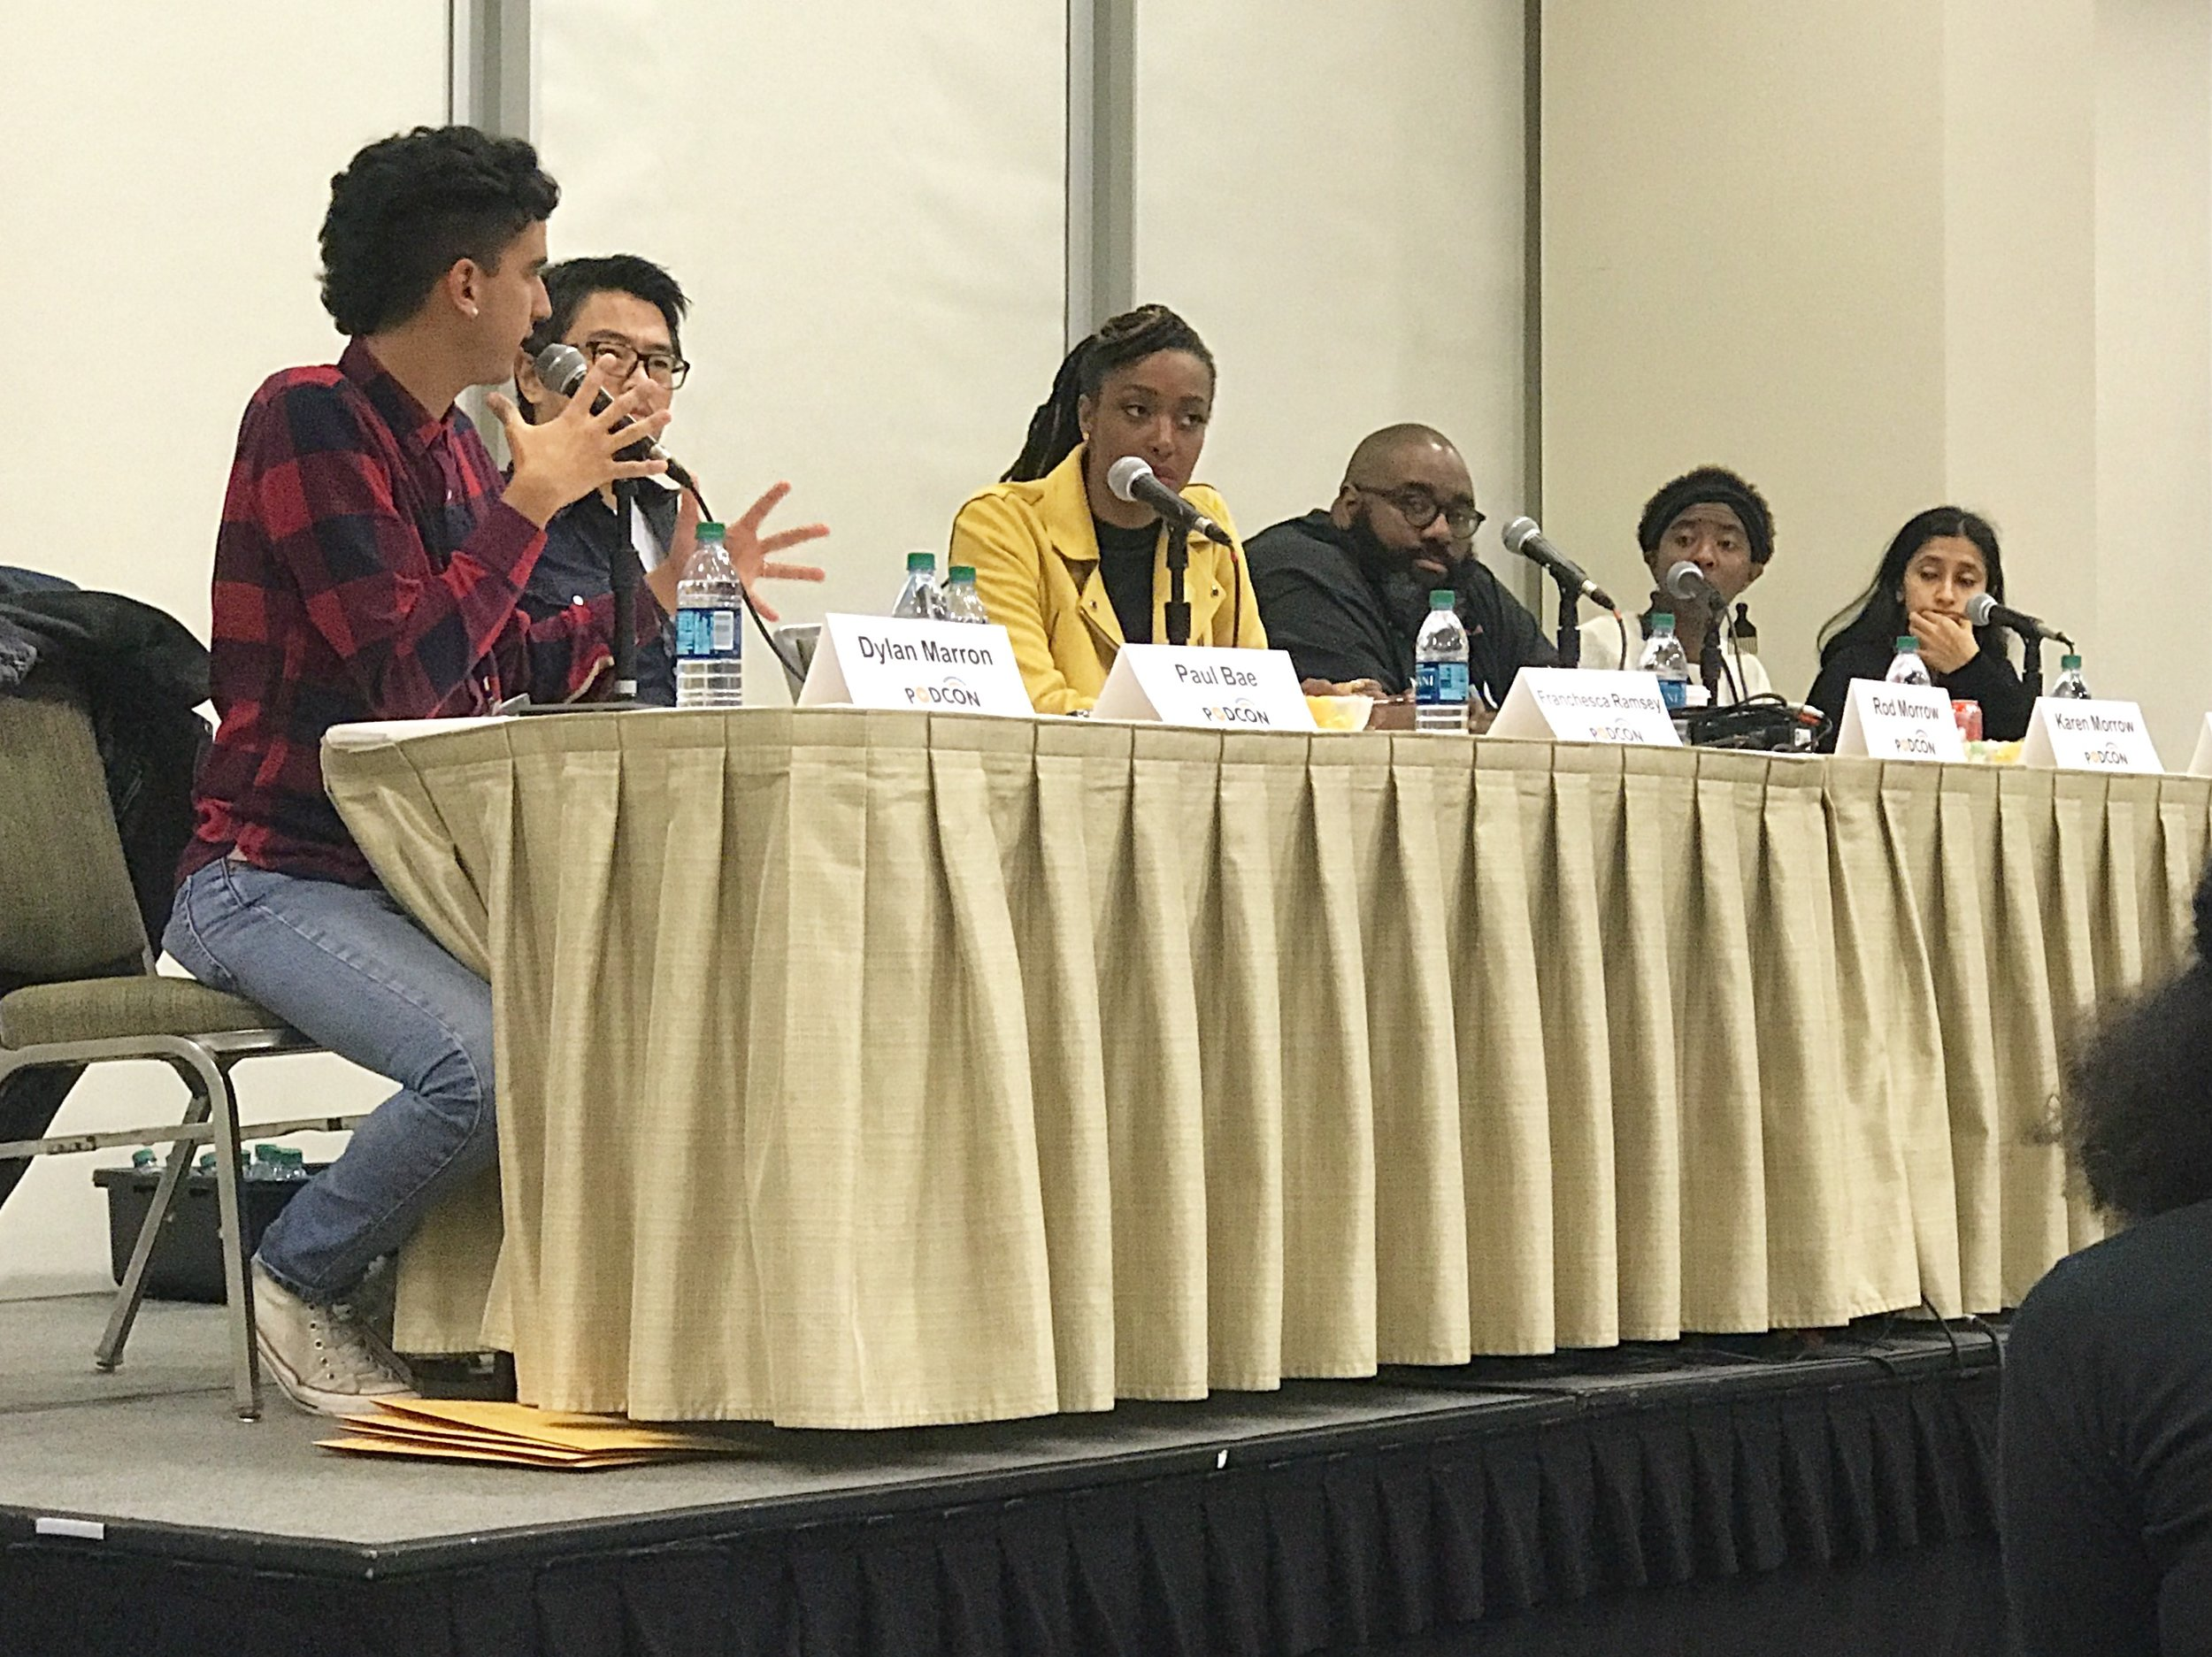 A great talk on podcasters of color. From L to R Dylan Marron, Paul Bae,Franchesca Ramzey, Rod Morrow,Karen Morrow,and Aparna Nancherla